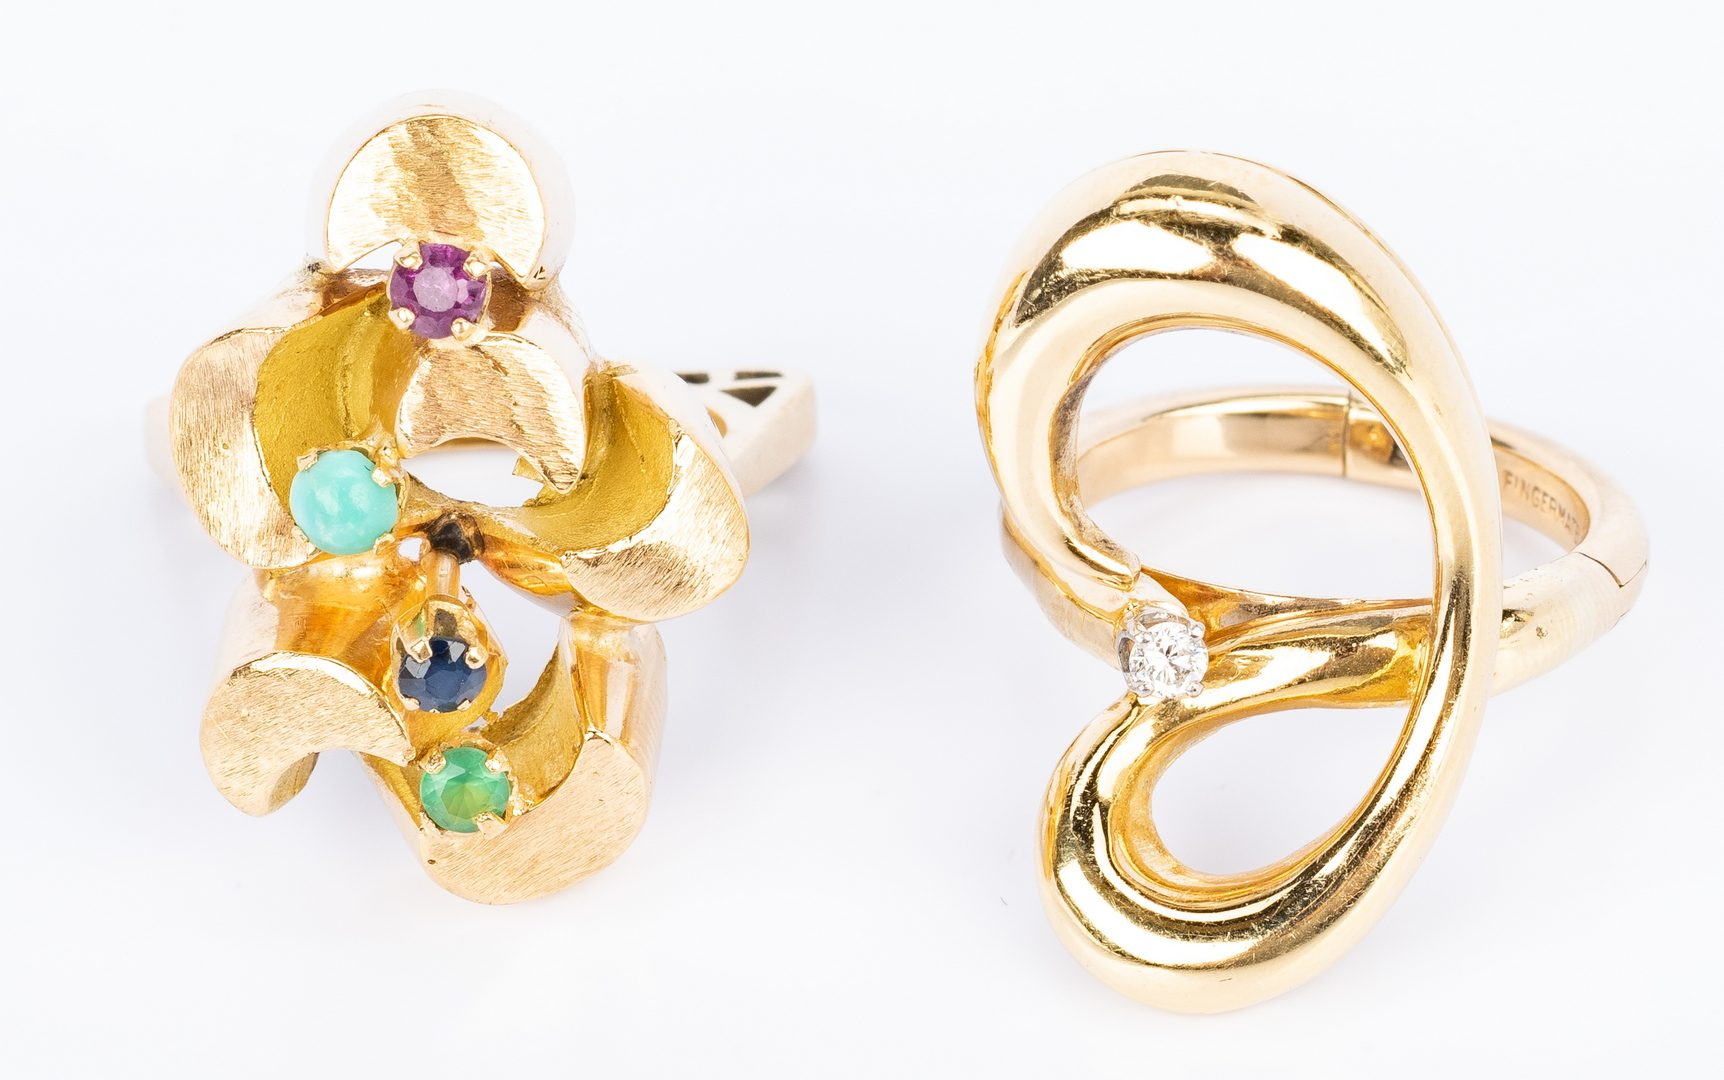 Lot 828: 2 Gold Fashion Rings, 18K and 14K